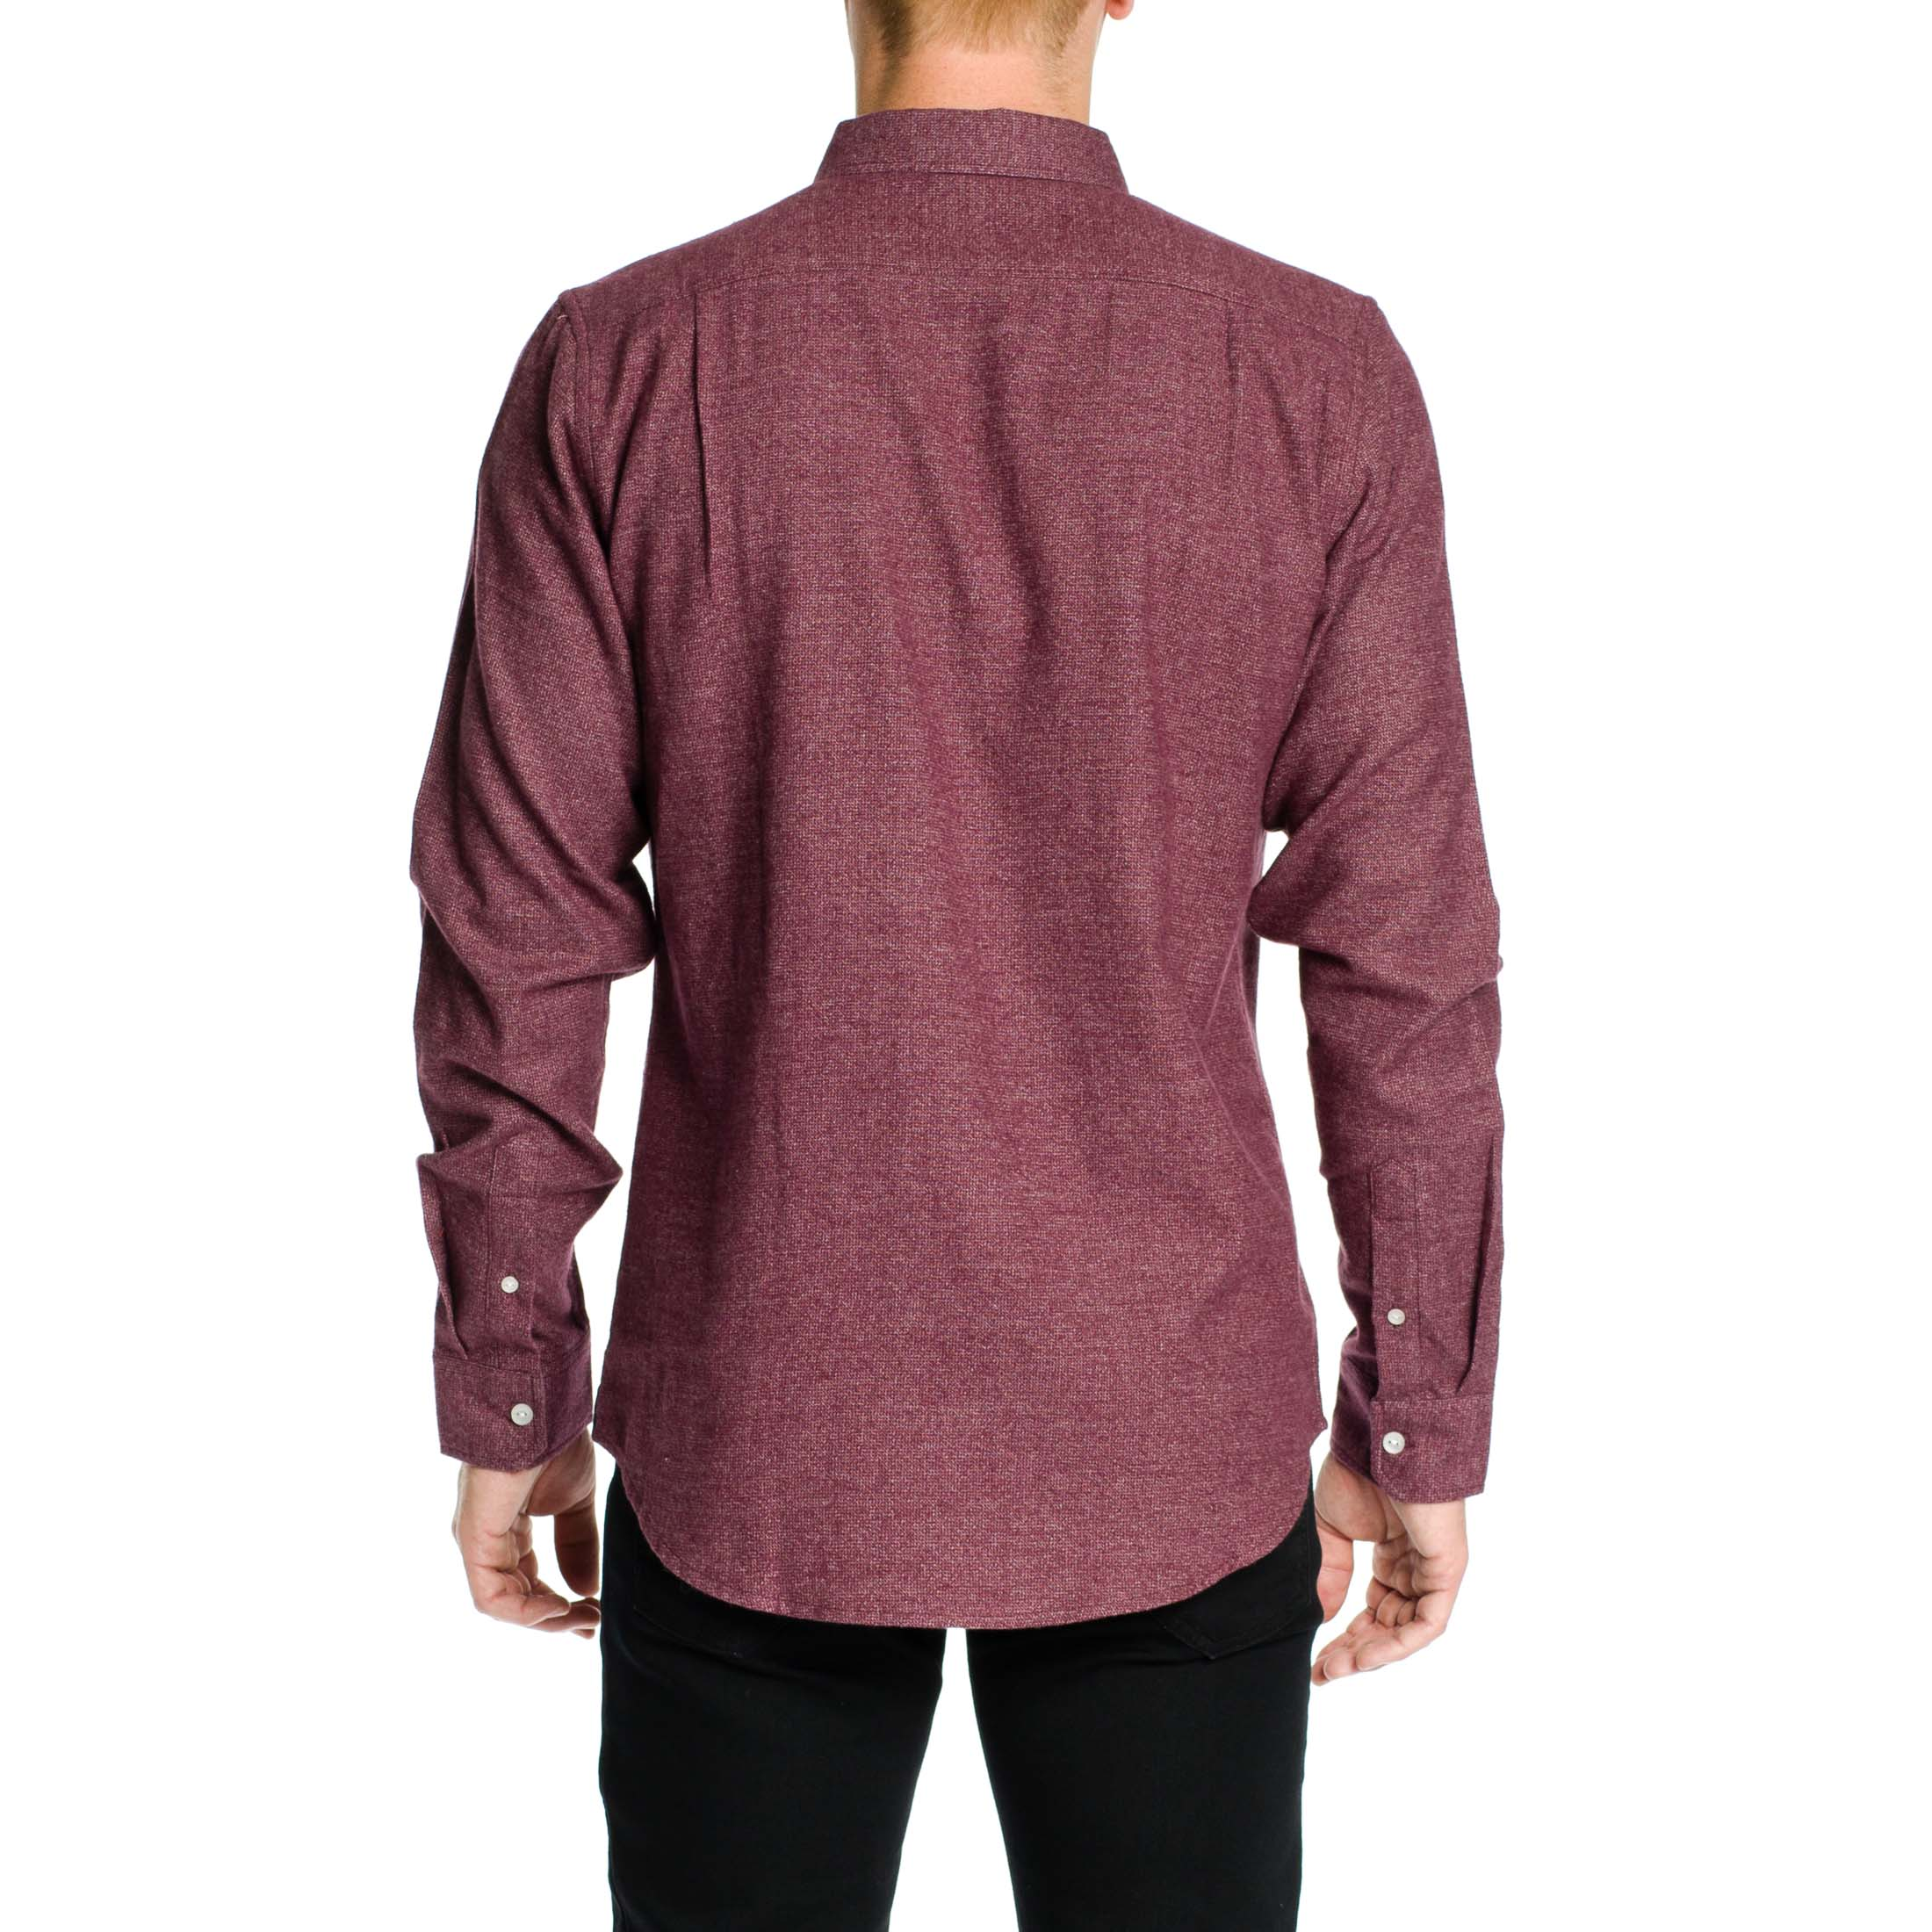 Everett Shirt - Burgundy - Ezekiel Clothing